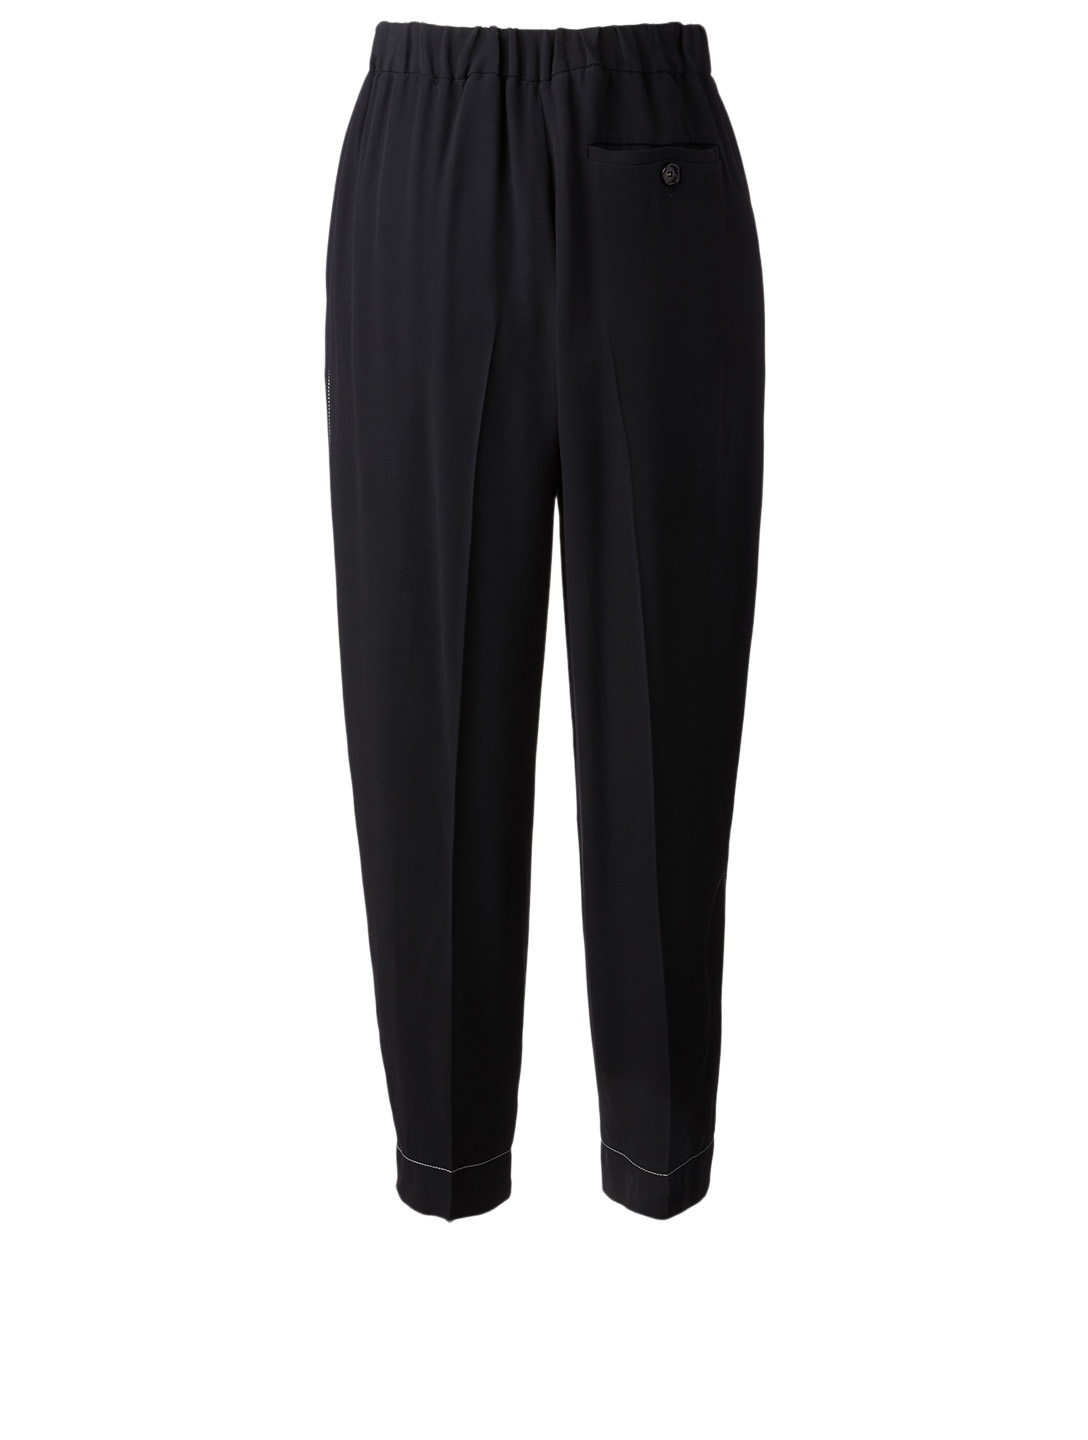 MARNI High-Waisted Pants Women's Blue